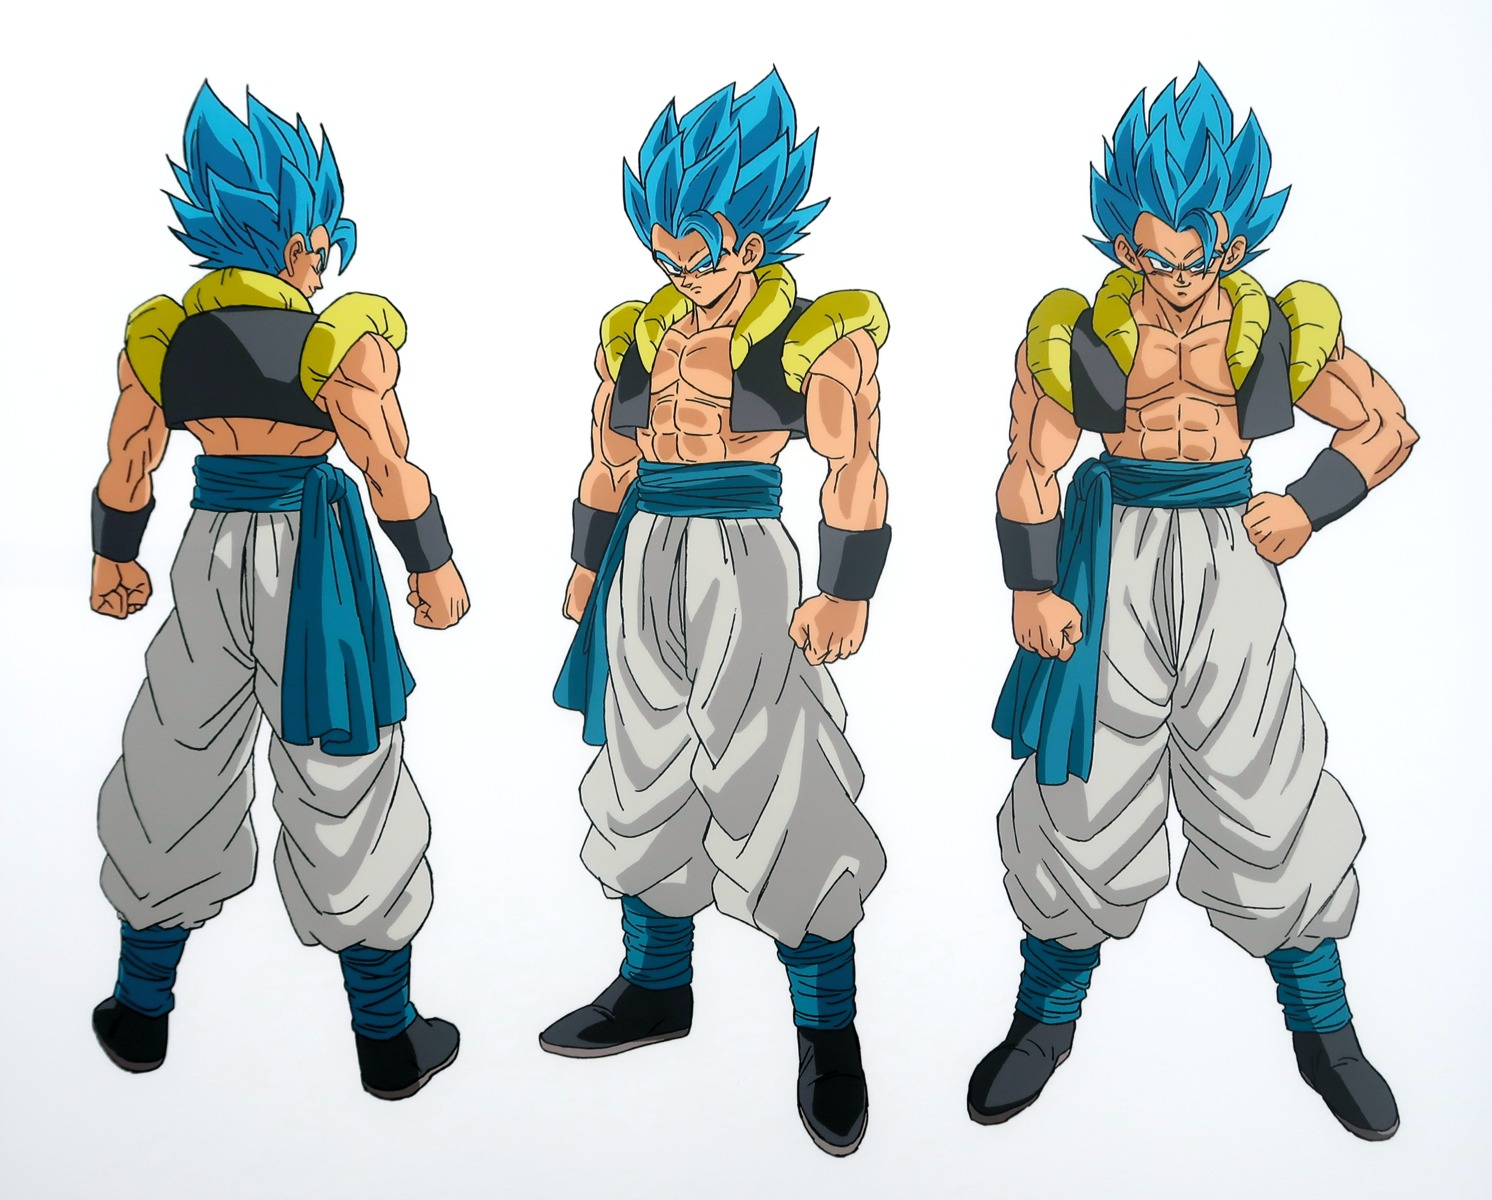 character_design dragon_ball_series dragon_ball_super dragon_ball_super:_broly naohiro_shintani production_materials settei